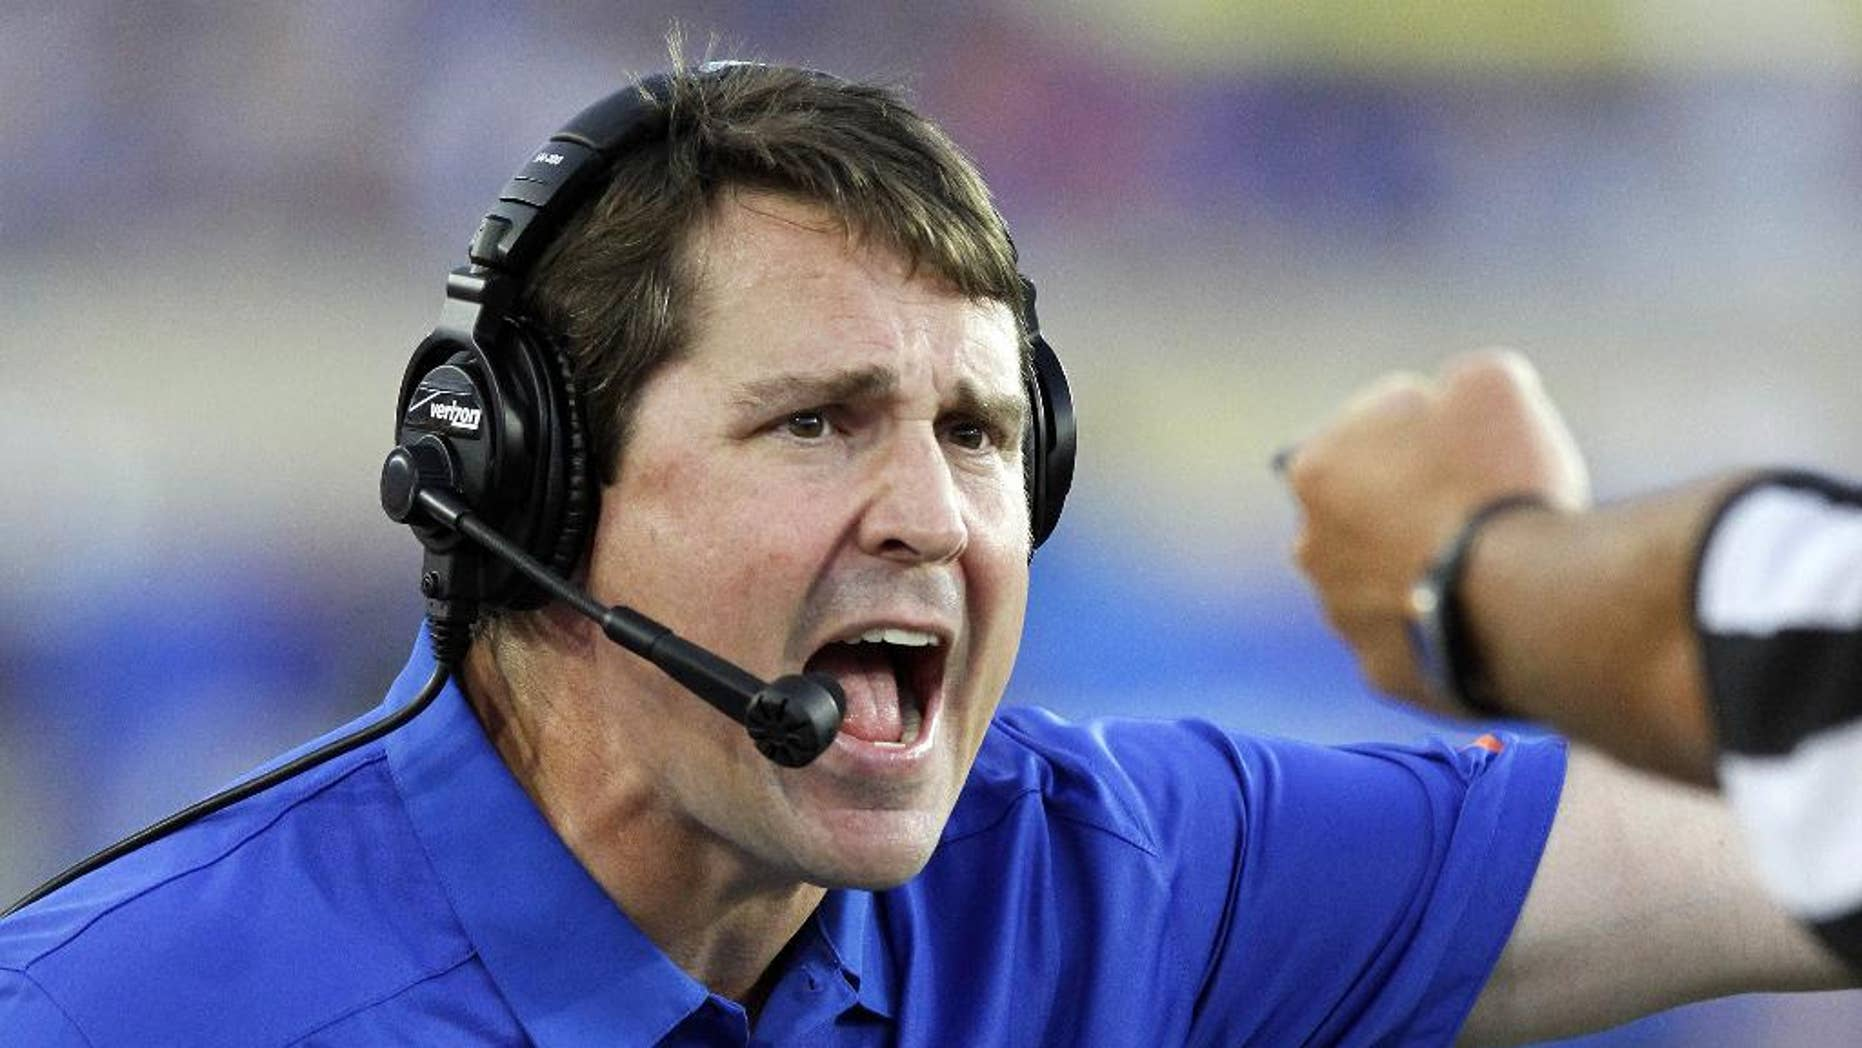 FILE  - In this Sept. 28, 2013, file photo, Florida head coach Will Muschamp yells to an official in the second quarter of an NCAA college football game against Kentucky in Lexington, Ky. Muschamp came to his own defense Wednesday, Sept. 3, 2014, ripping critics who questioned his decision to reinstate three players suspended for a season opener that lasted just 10 seconds. (AP Photo/James Crisp, File)